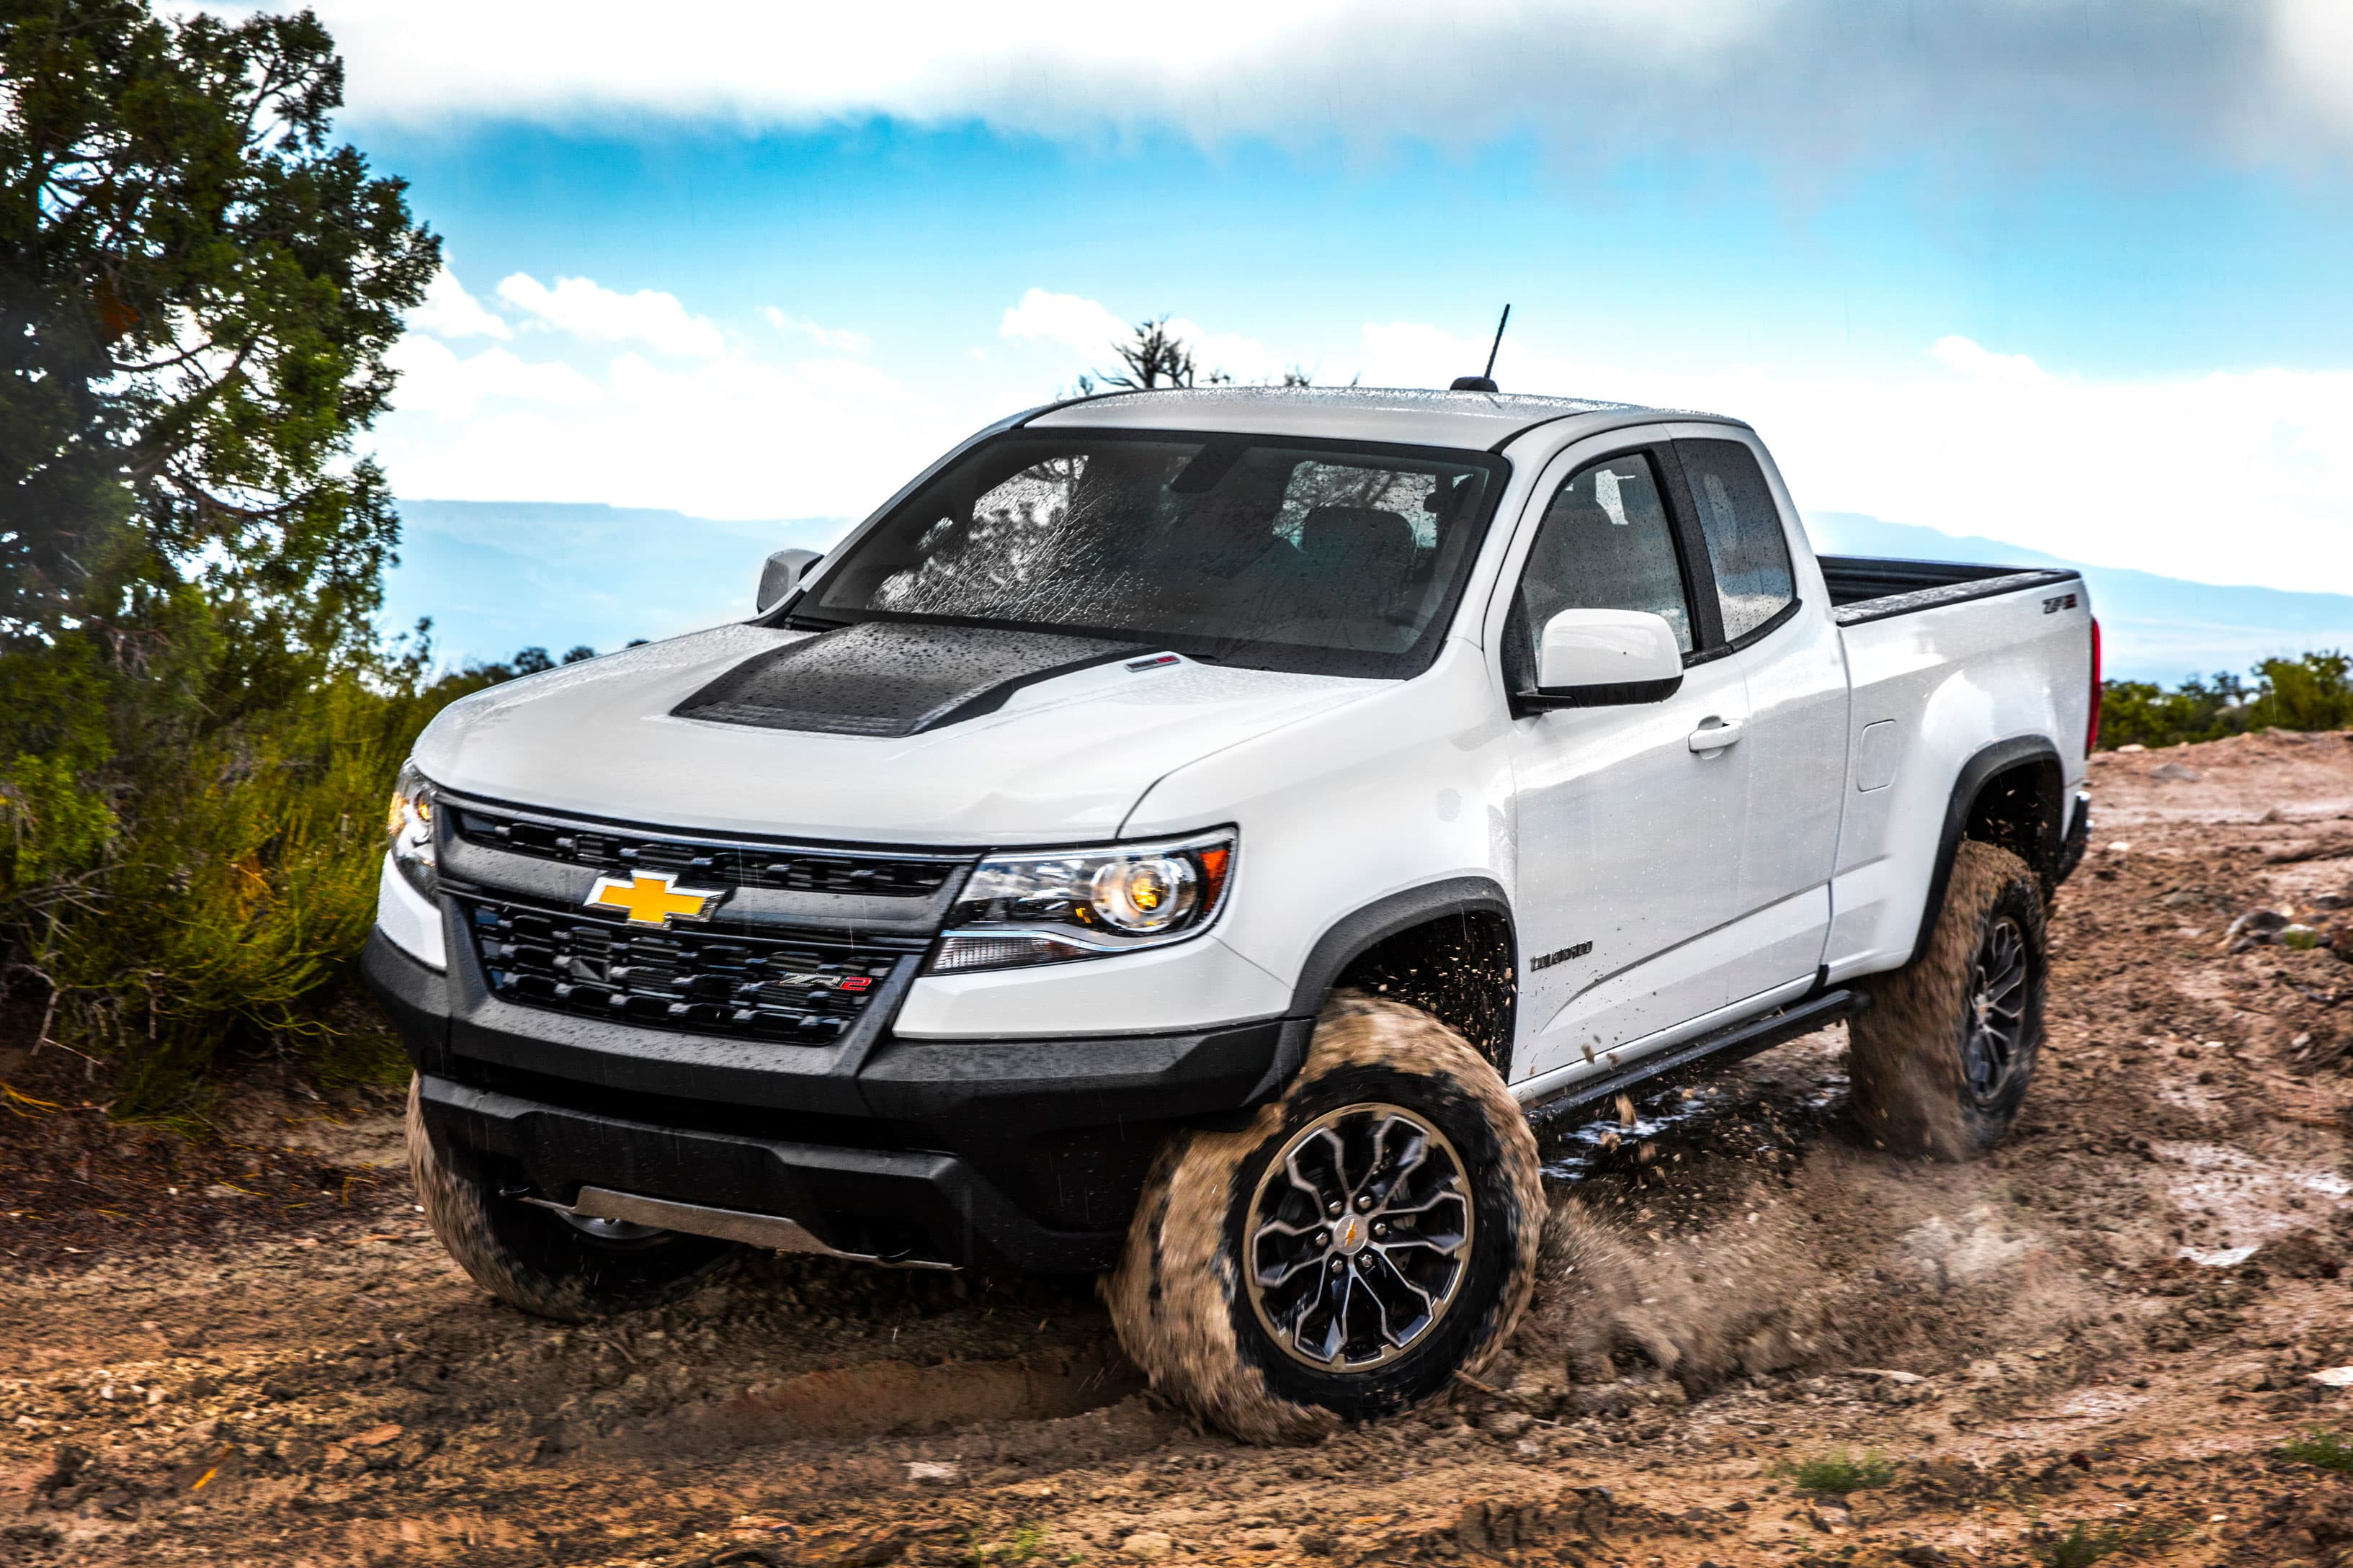 GM is investing $1.5 billion in the US to build redesigned midsize pickups